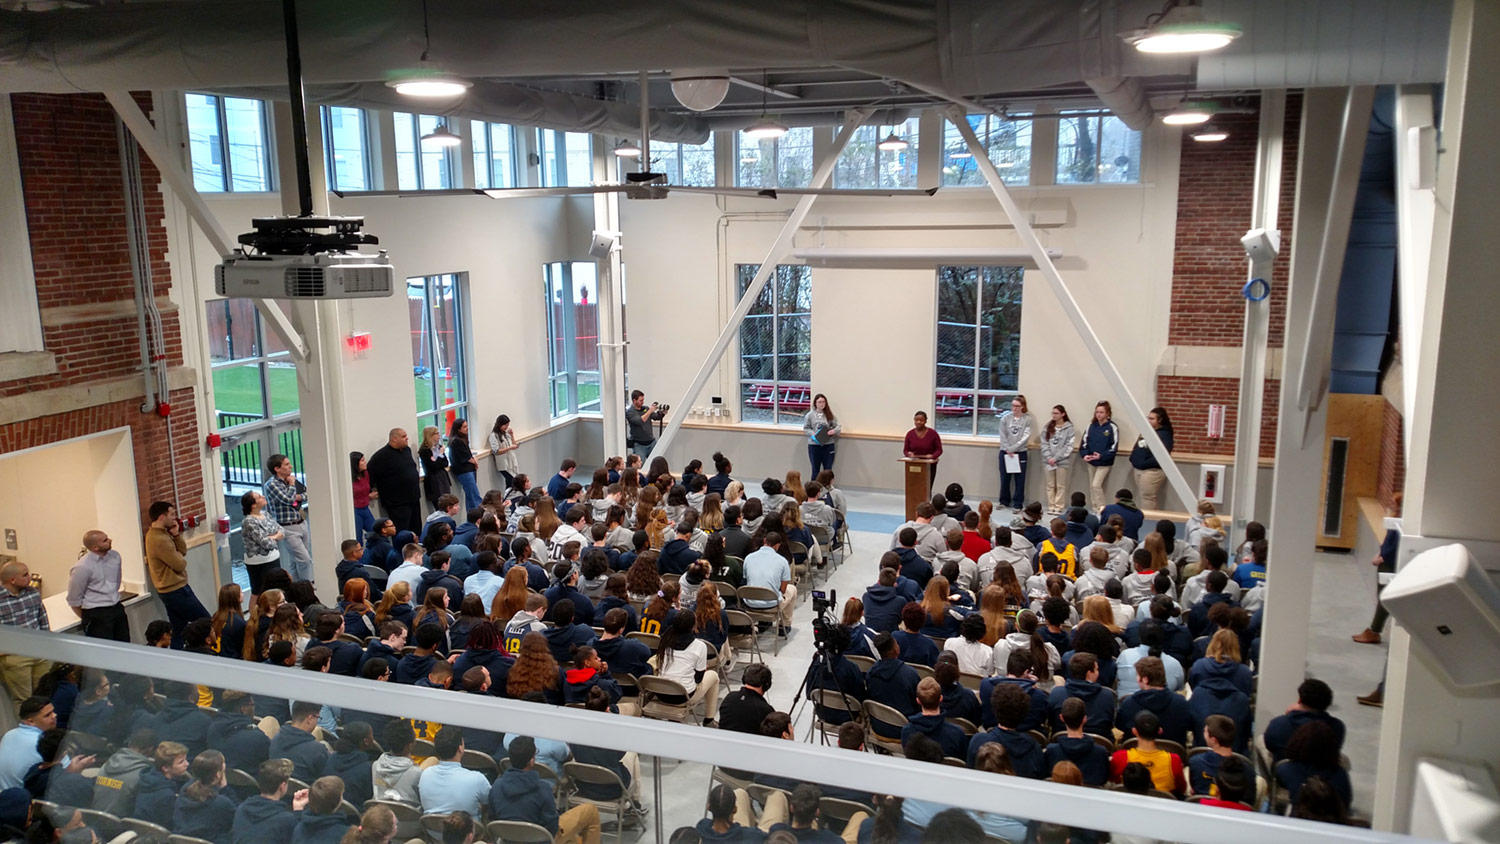 School Assembly in the Commons